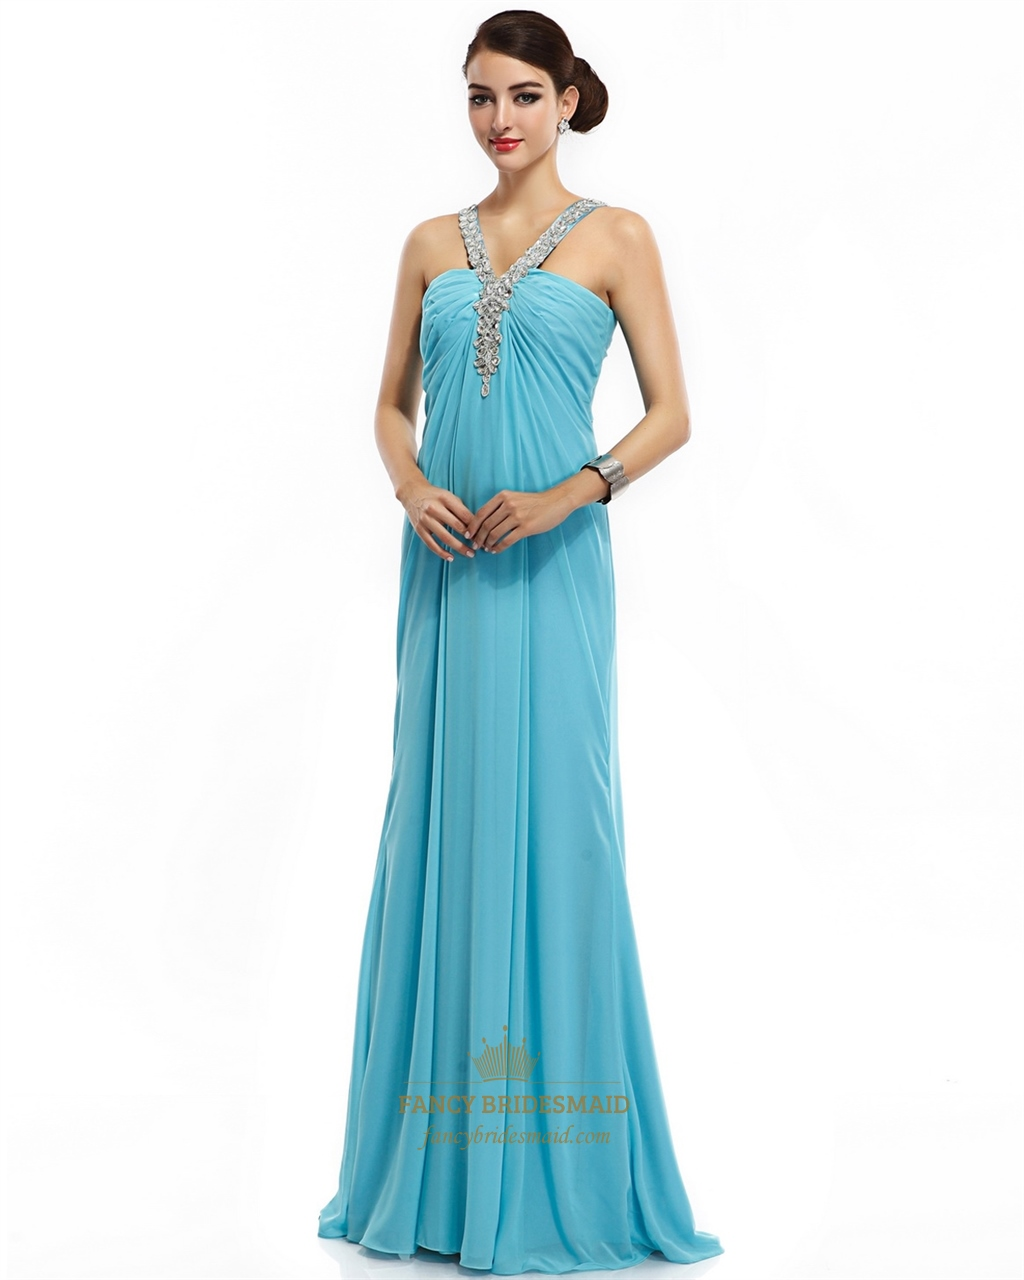 5af924bd70a Blue Criss-Cross A-Line Empire Chiffon Prom Dress With Beaded Straps SKU  -NW695